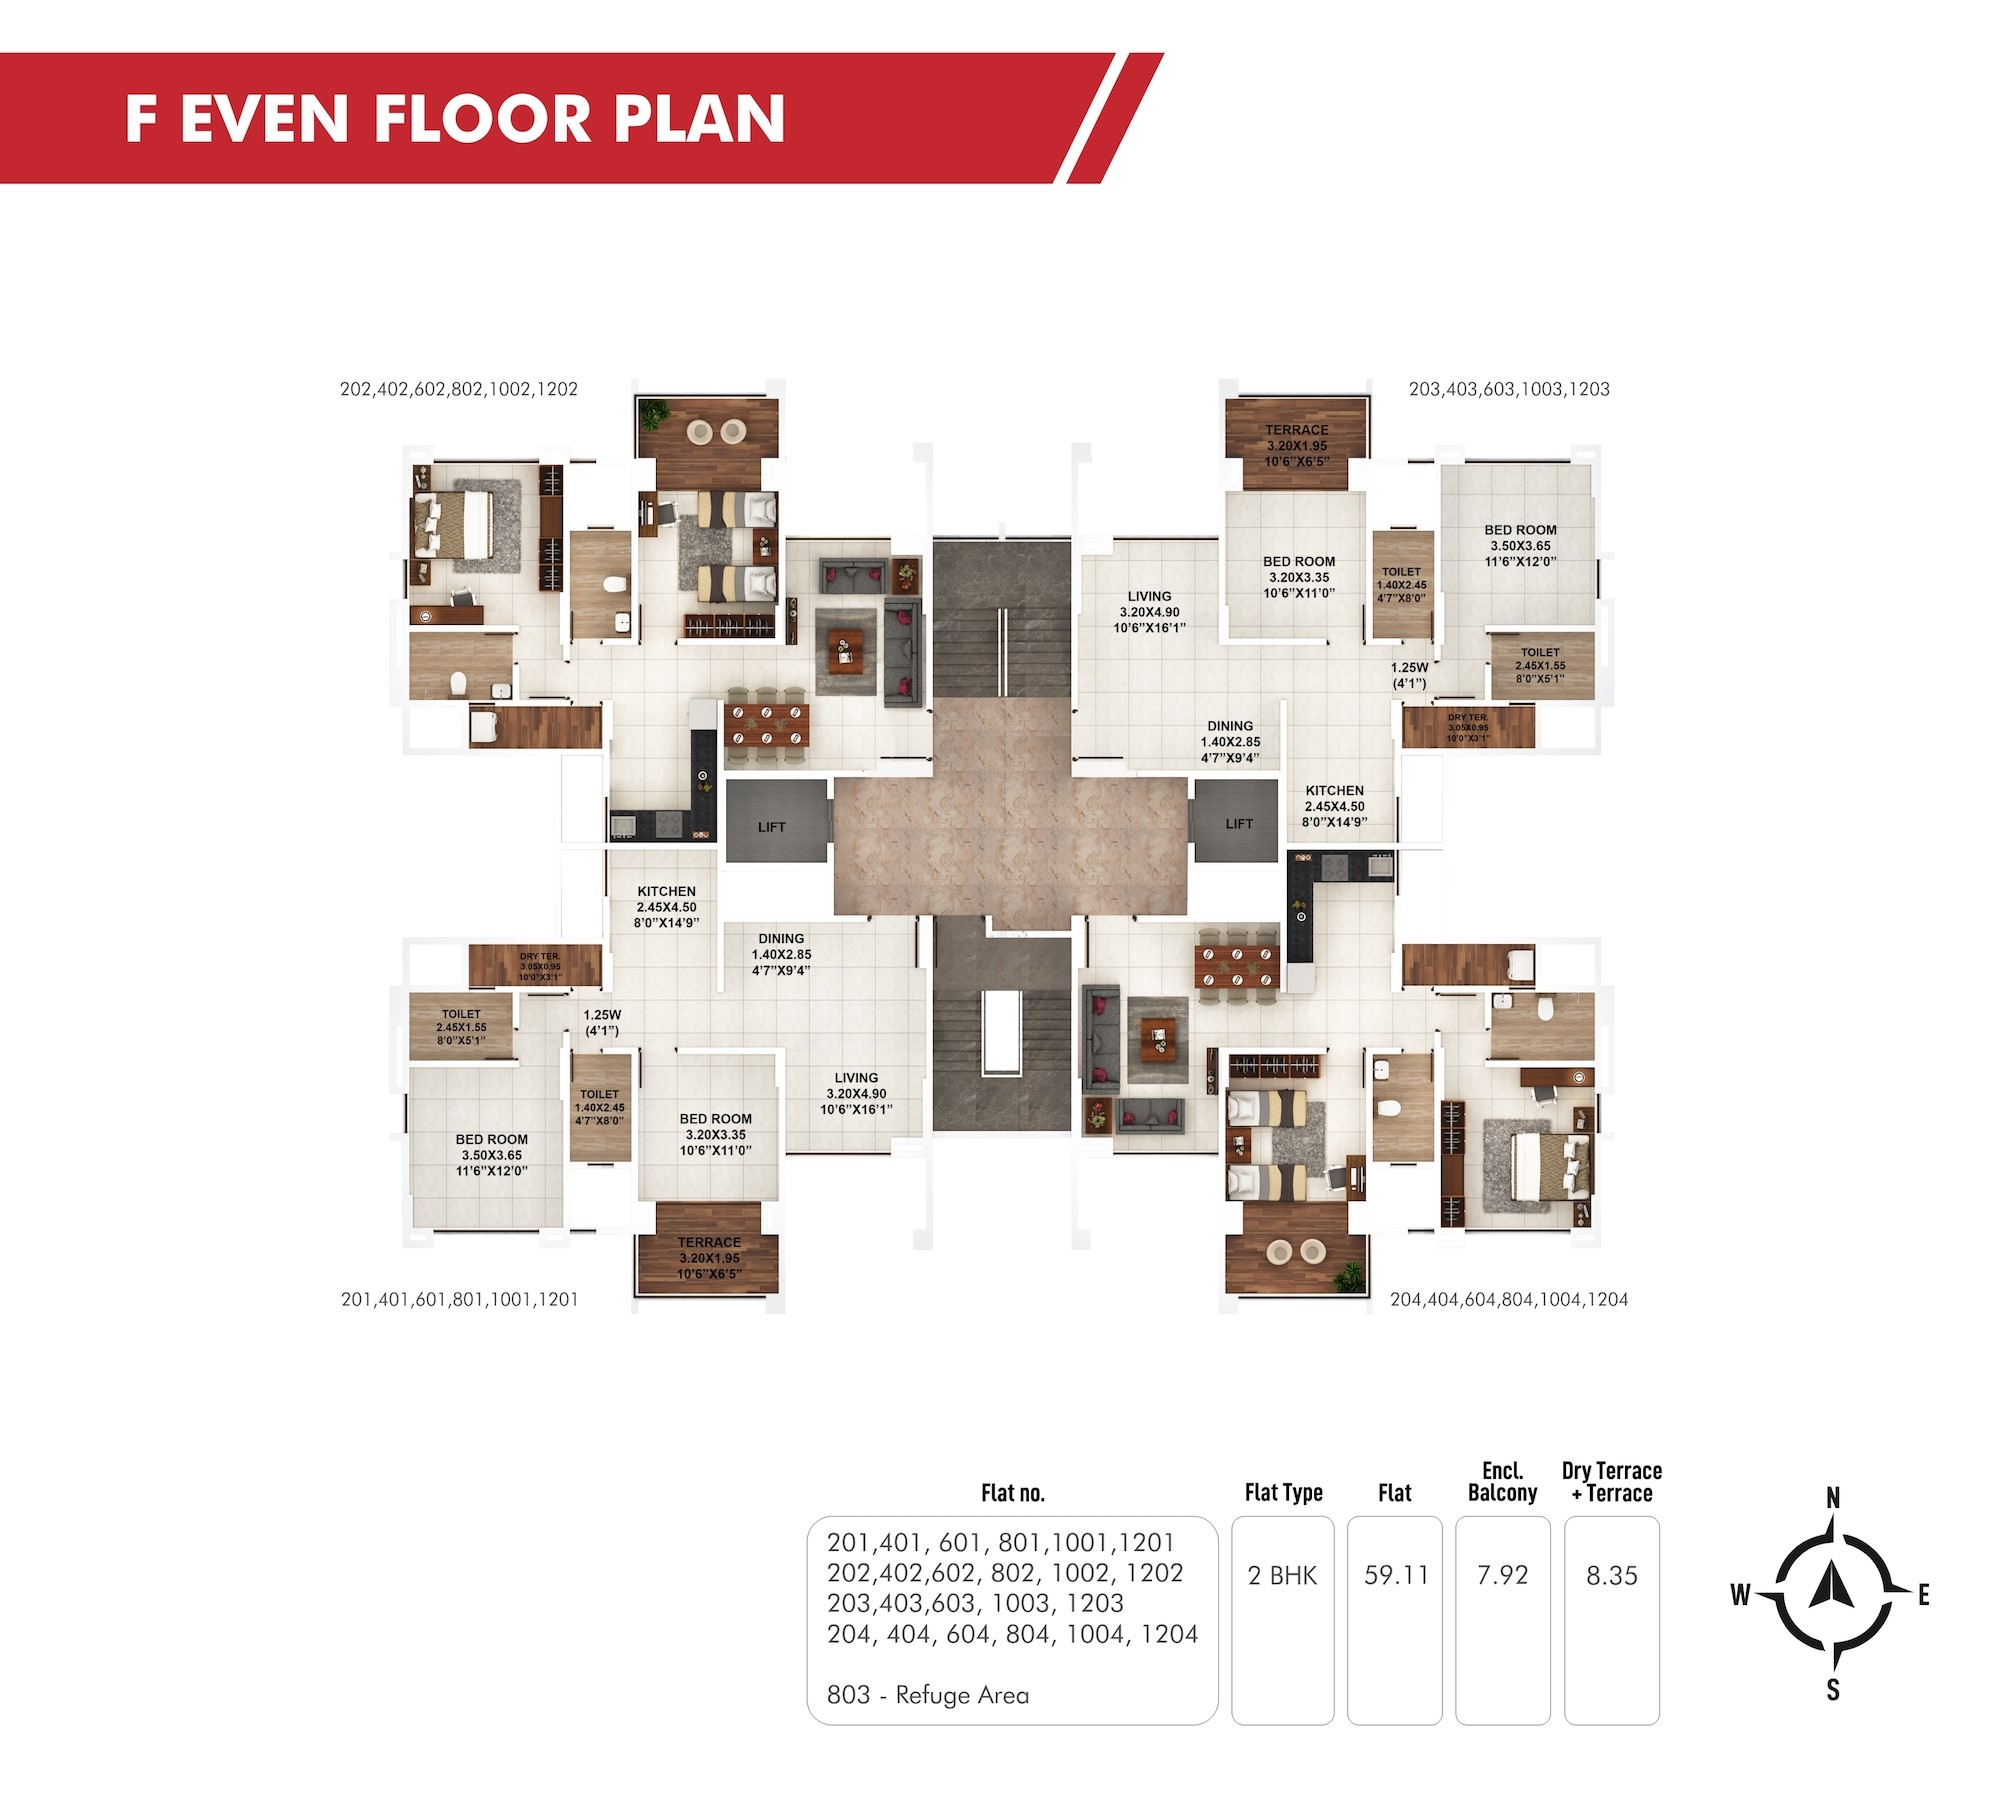 Piccadilly F Even Floor Plan